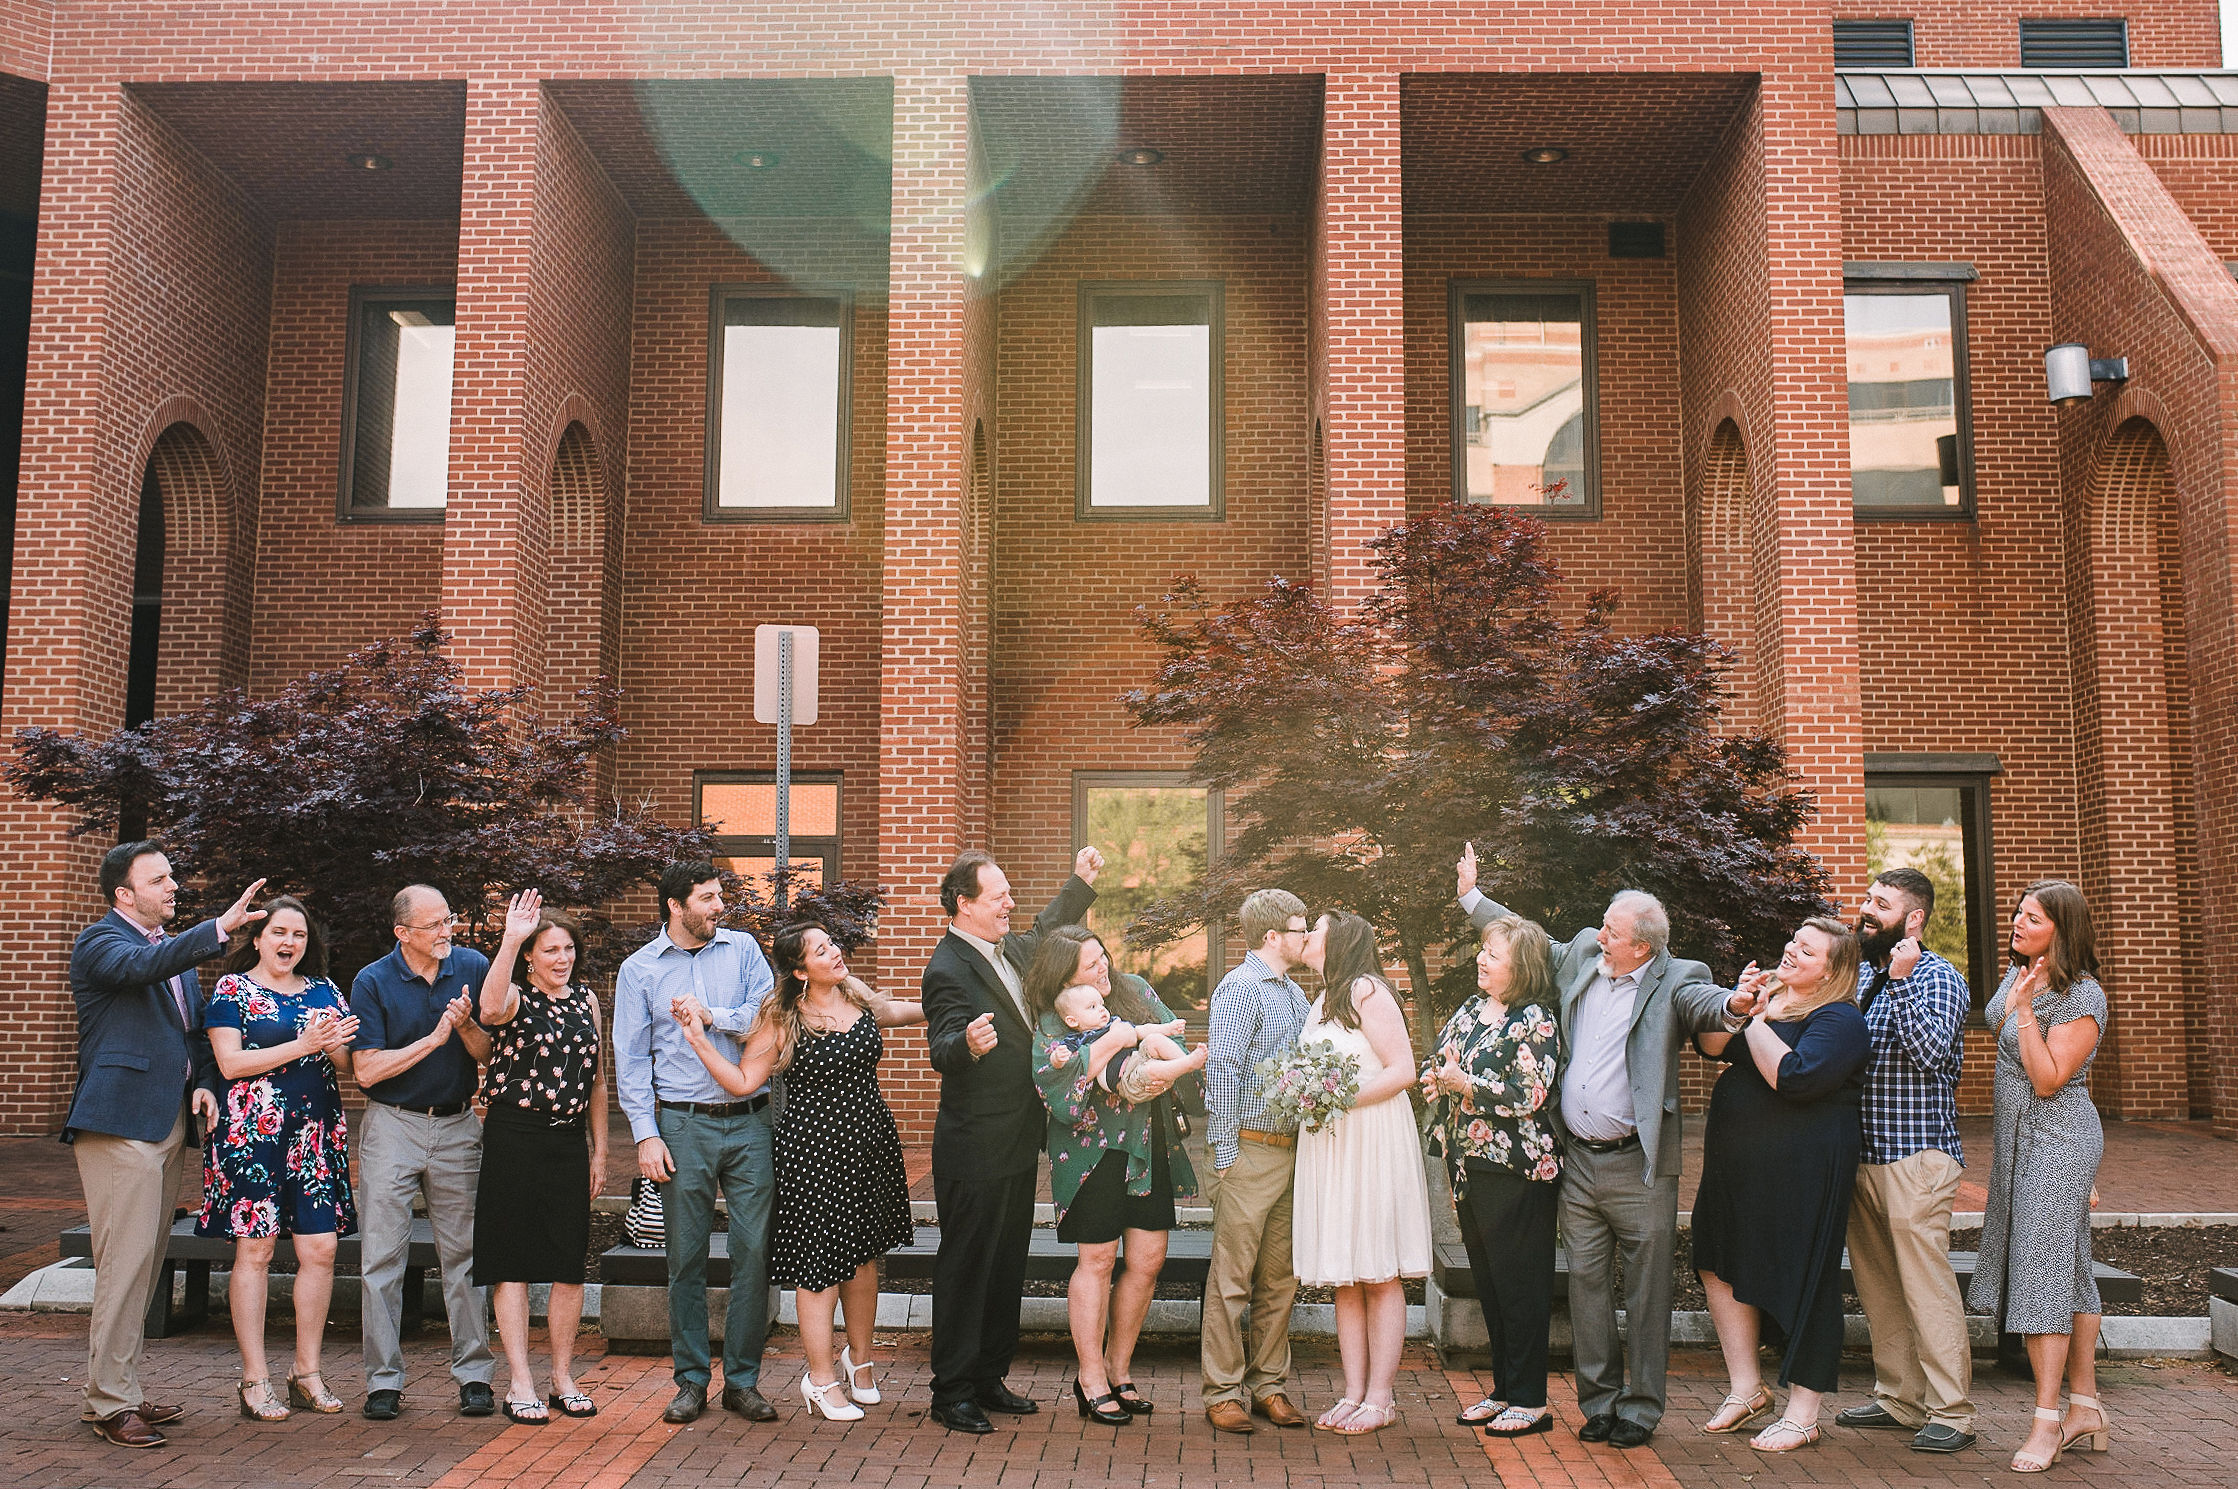 friends and family cheering as bride and groom kiss at City Hall in Frederick, MD